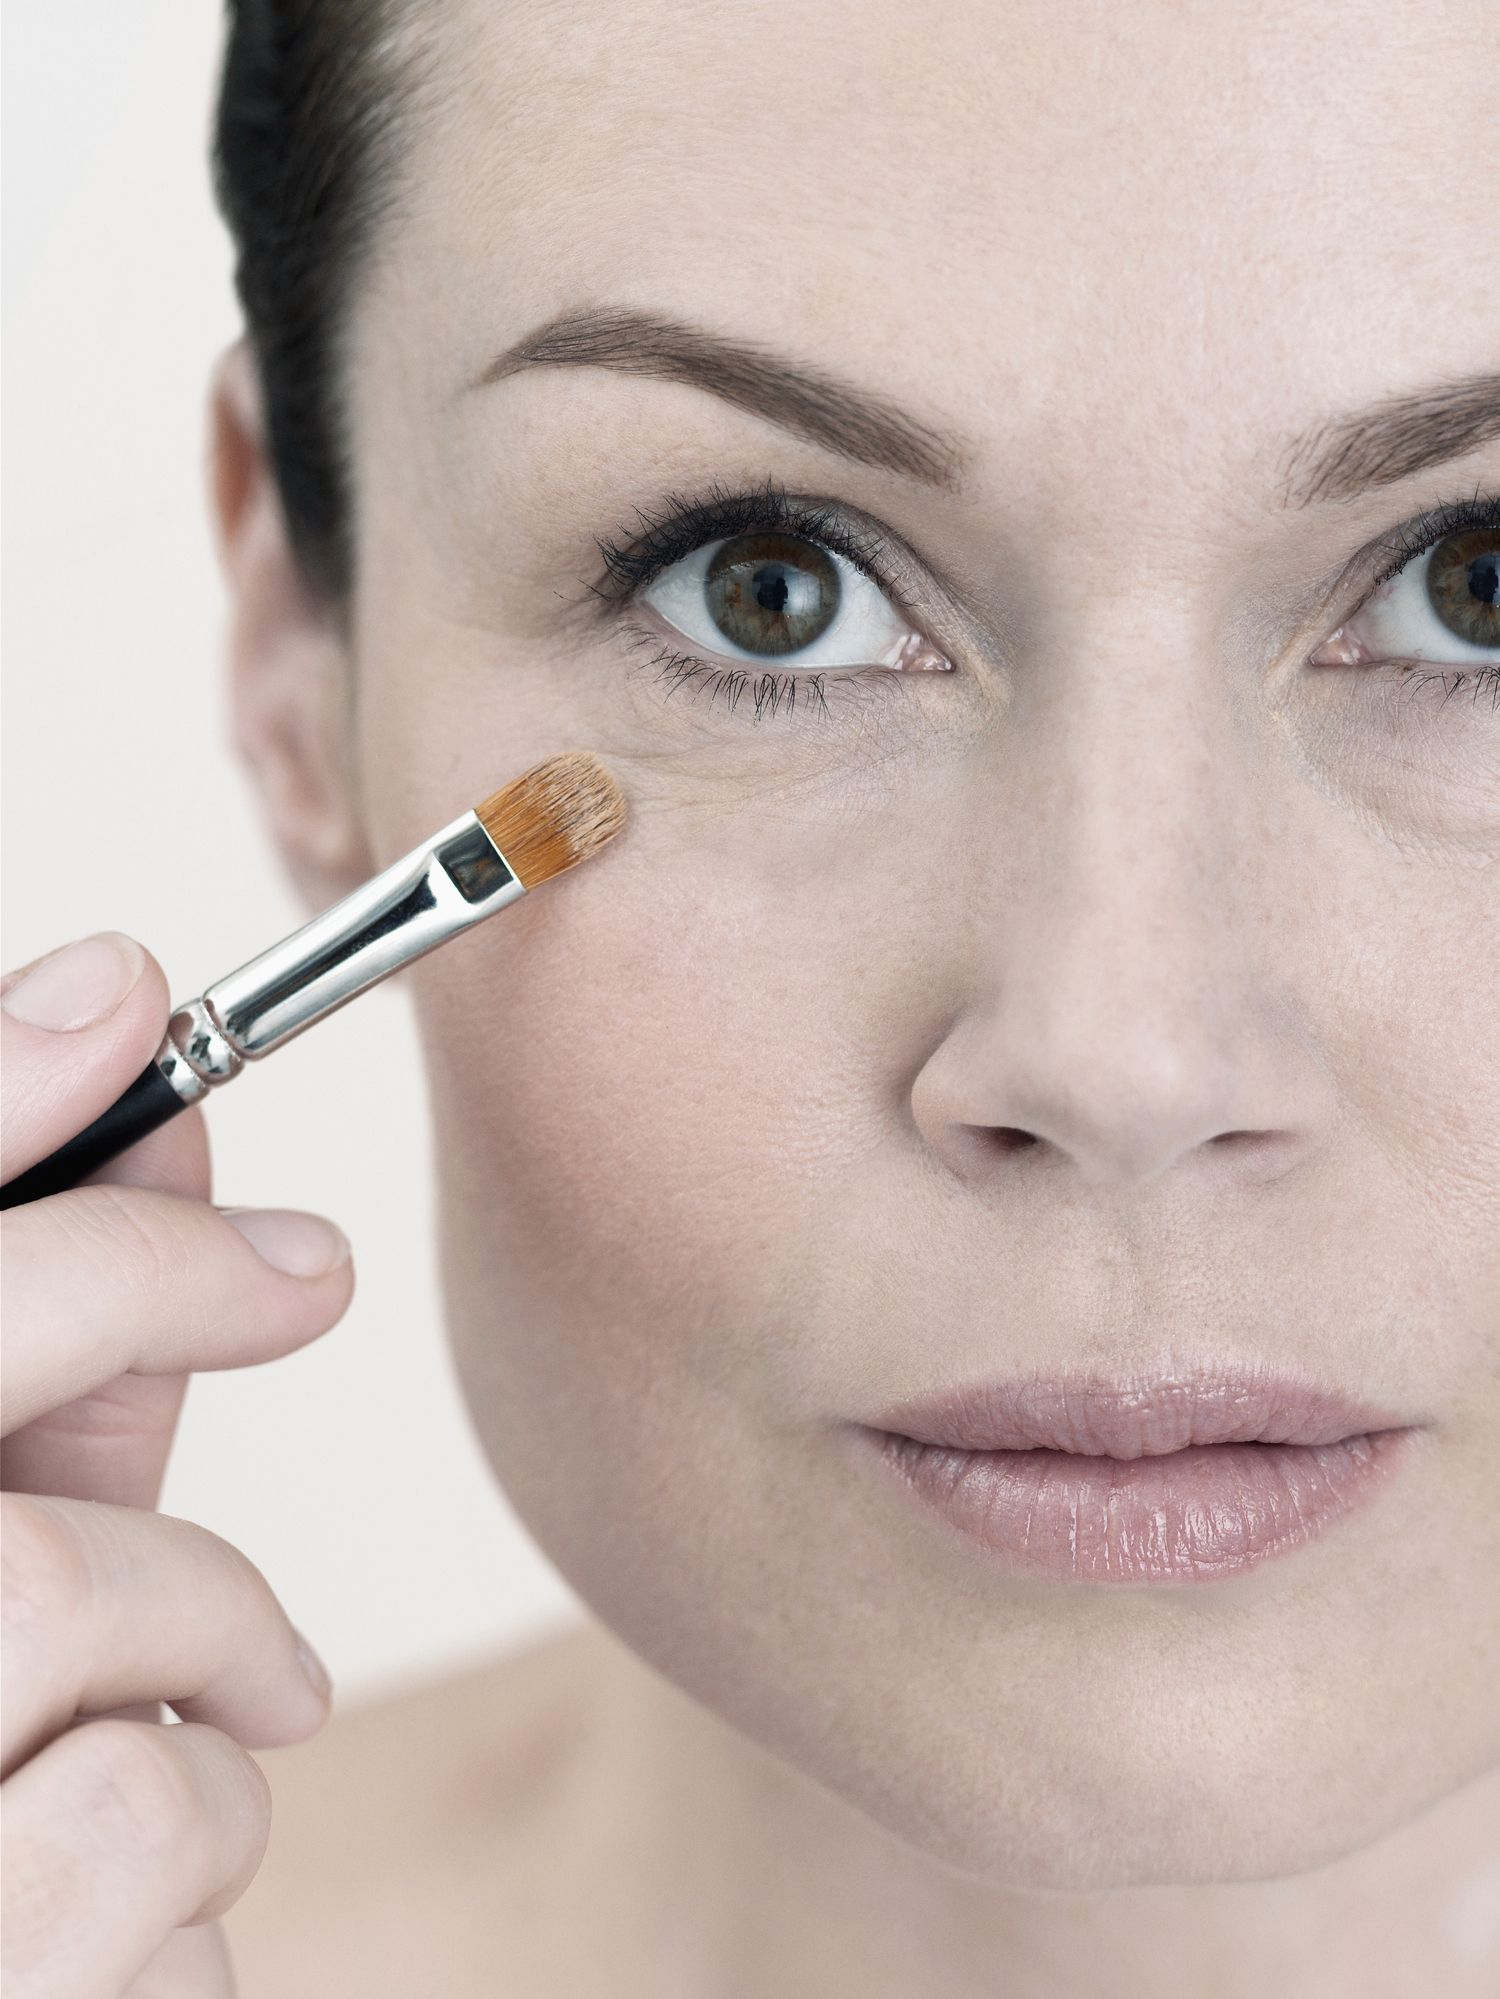 eye make-up tips in the course of women over and beyond 50